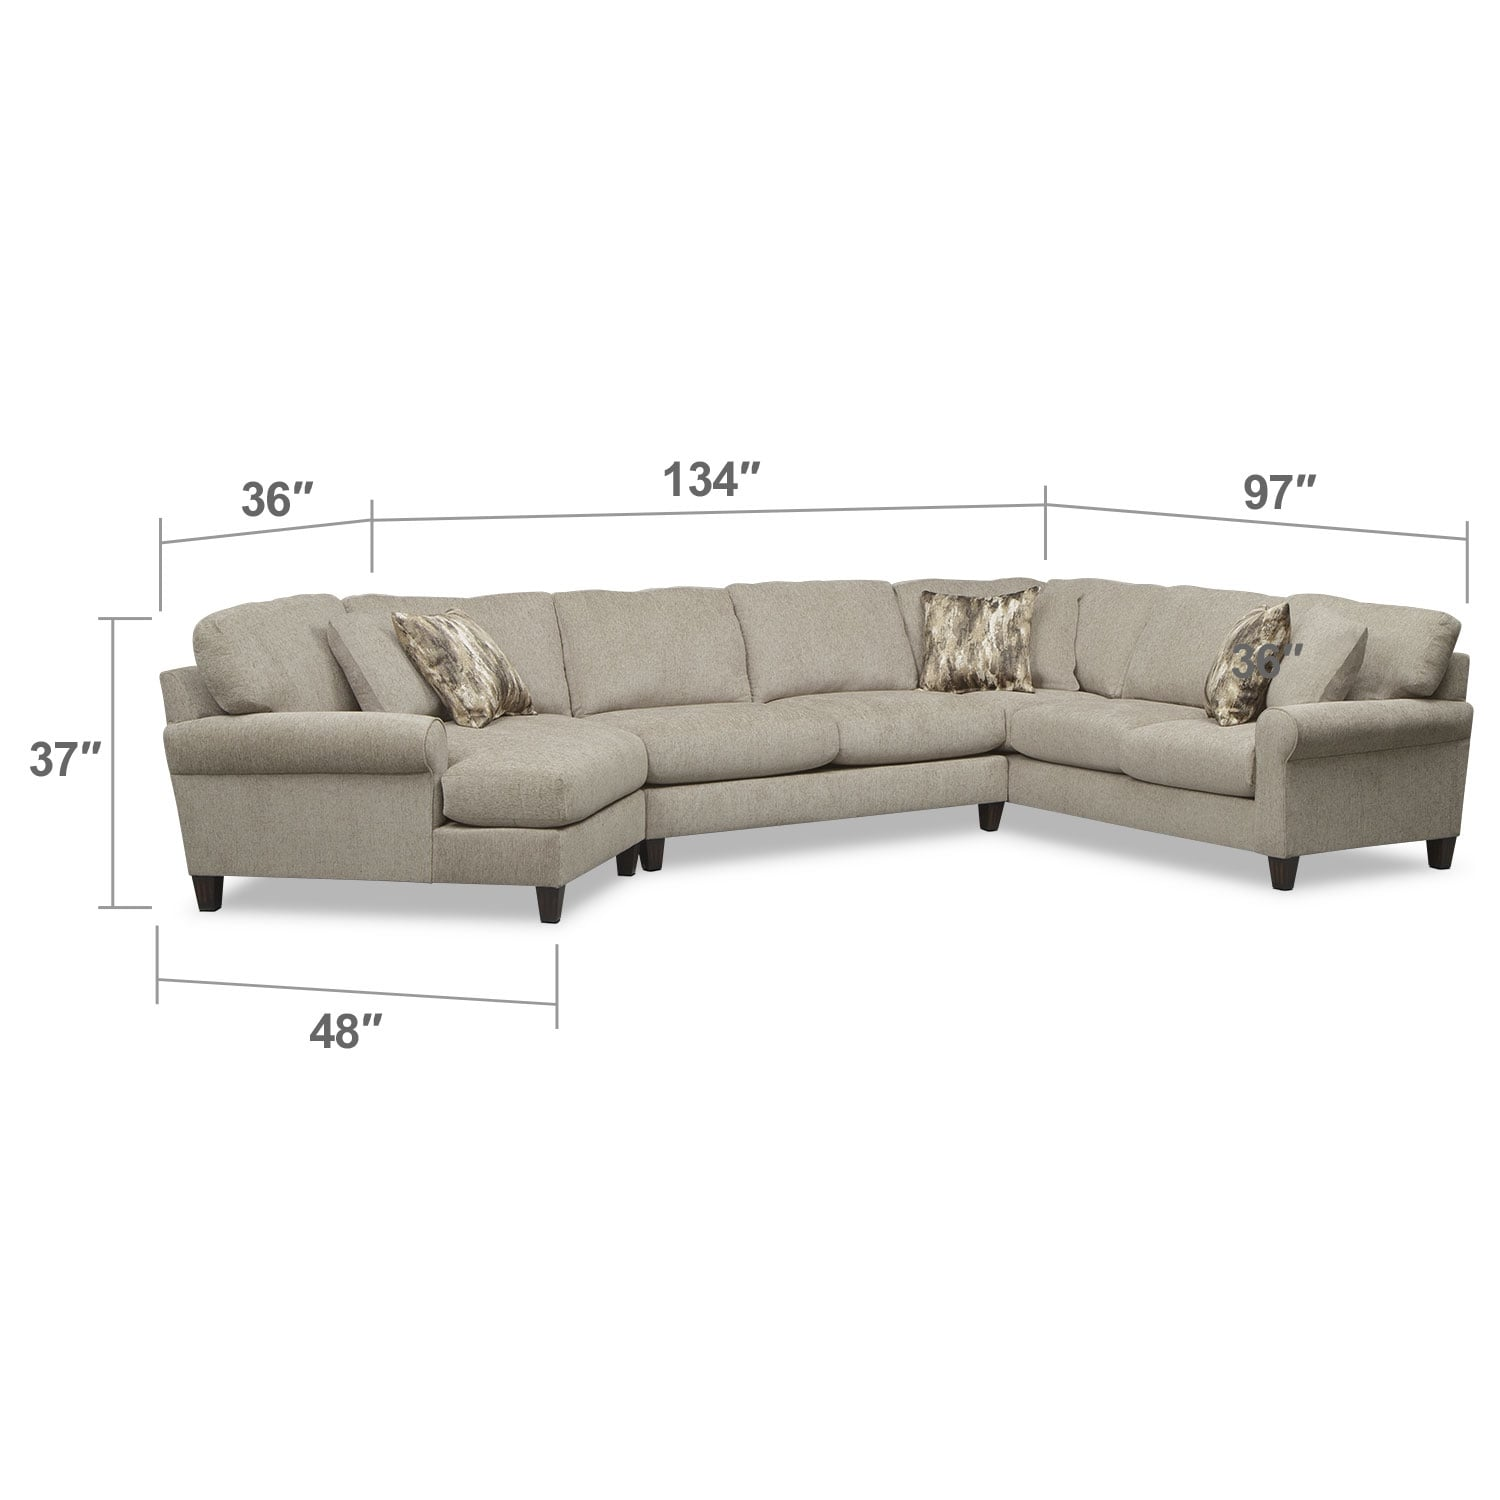 Living Room Furniture - Karma 3-Piece Sectional with Left-Facing Cuddler - Mink